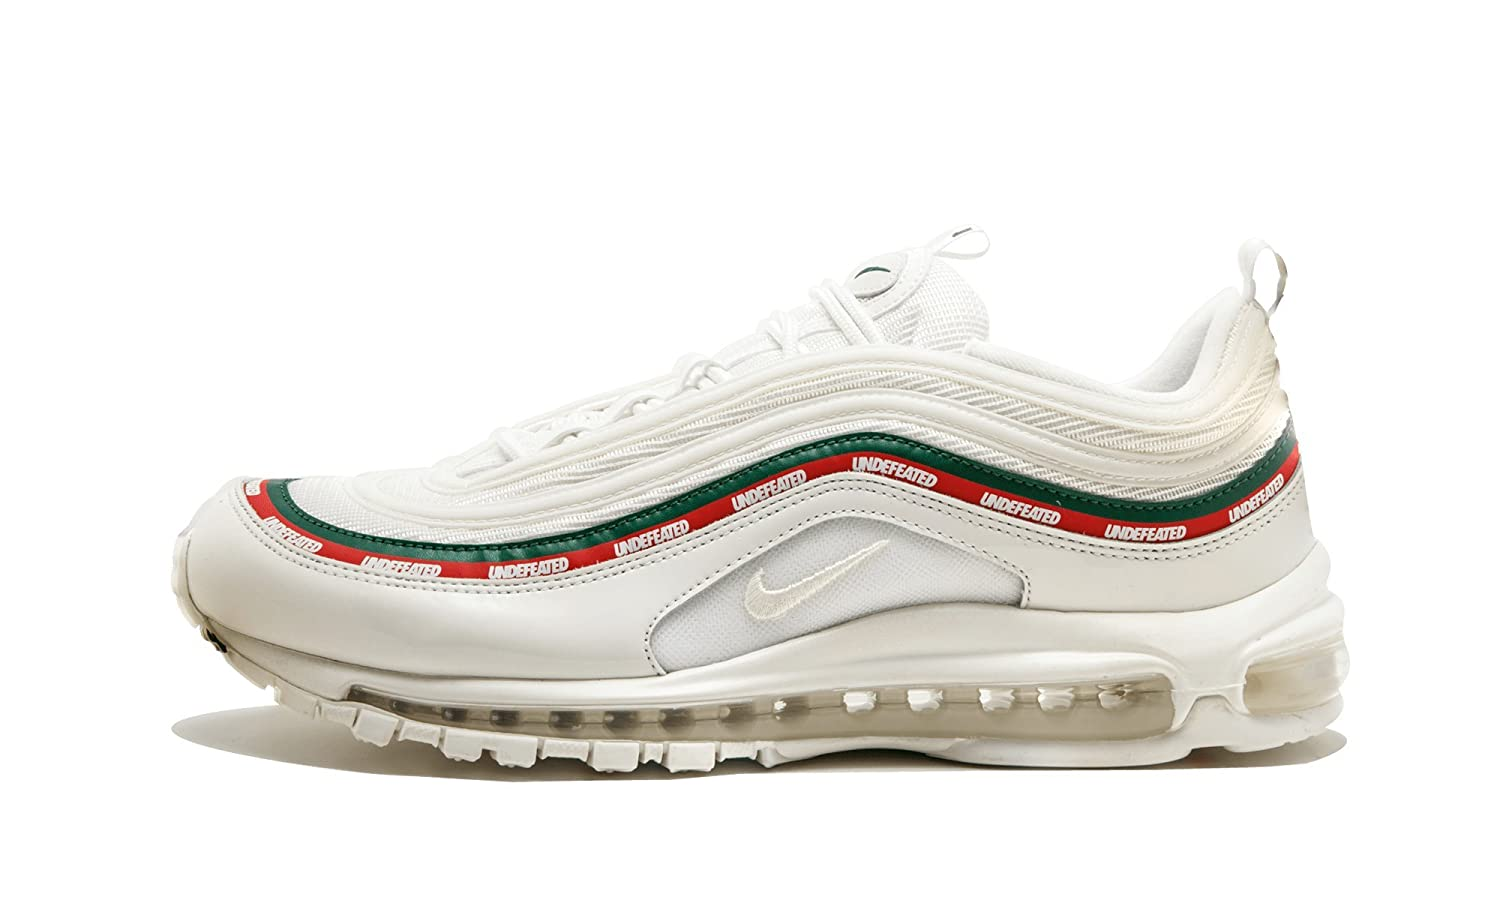 Nike Air Max 97 Undefeated Release Date. Nike+ Launch FI